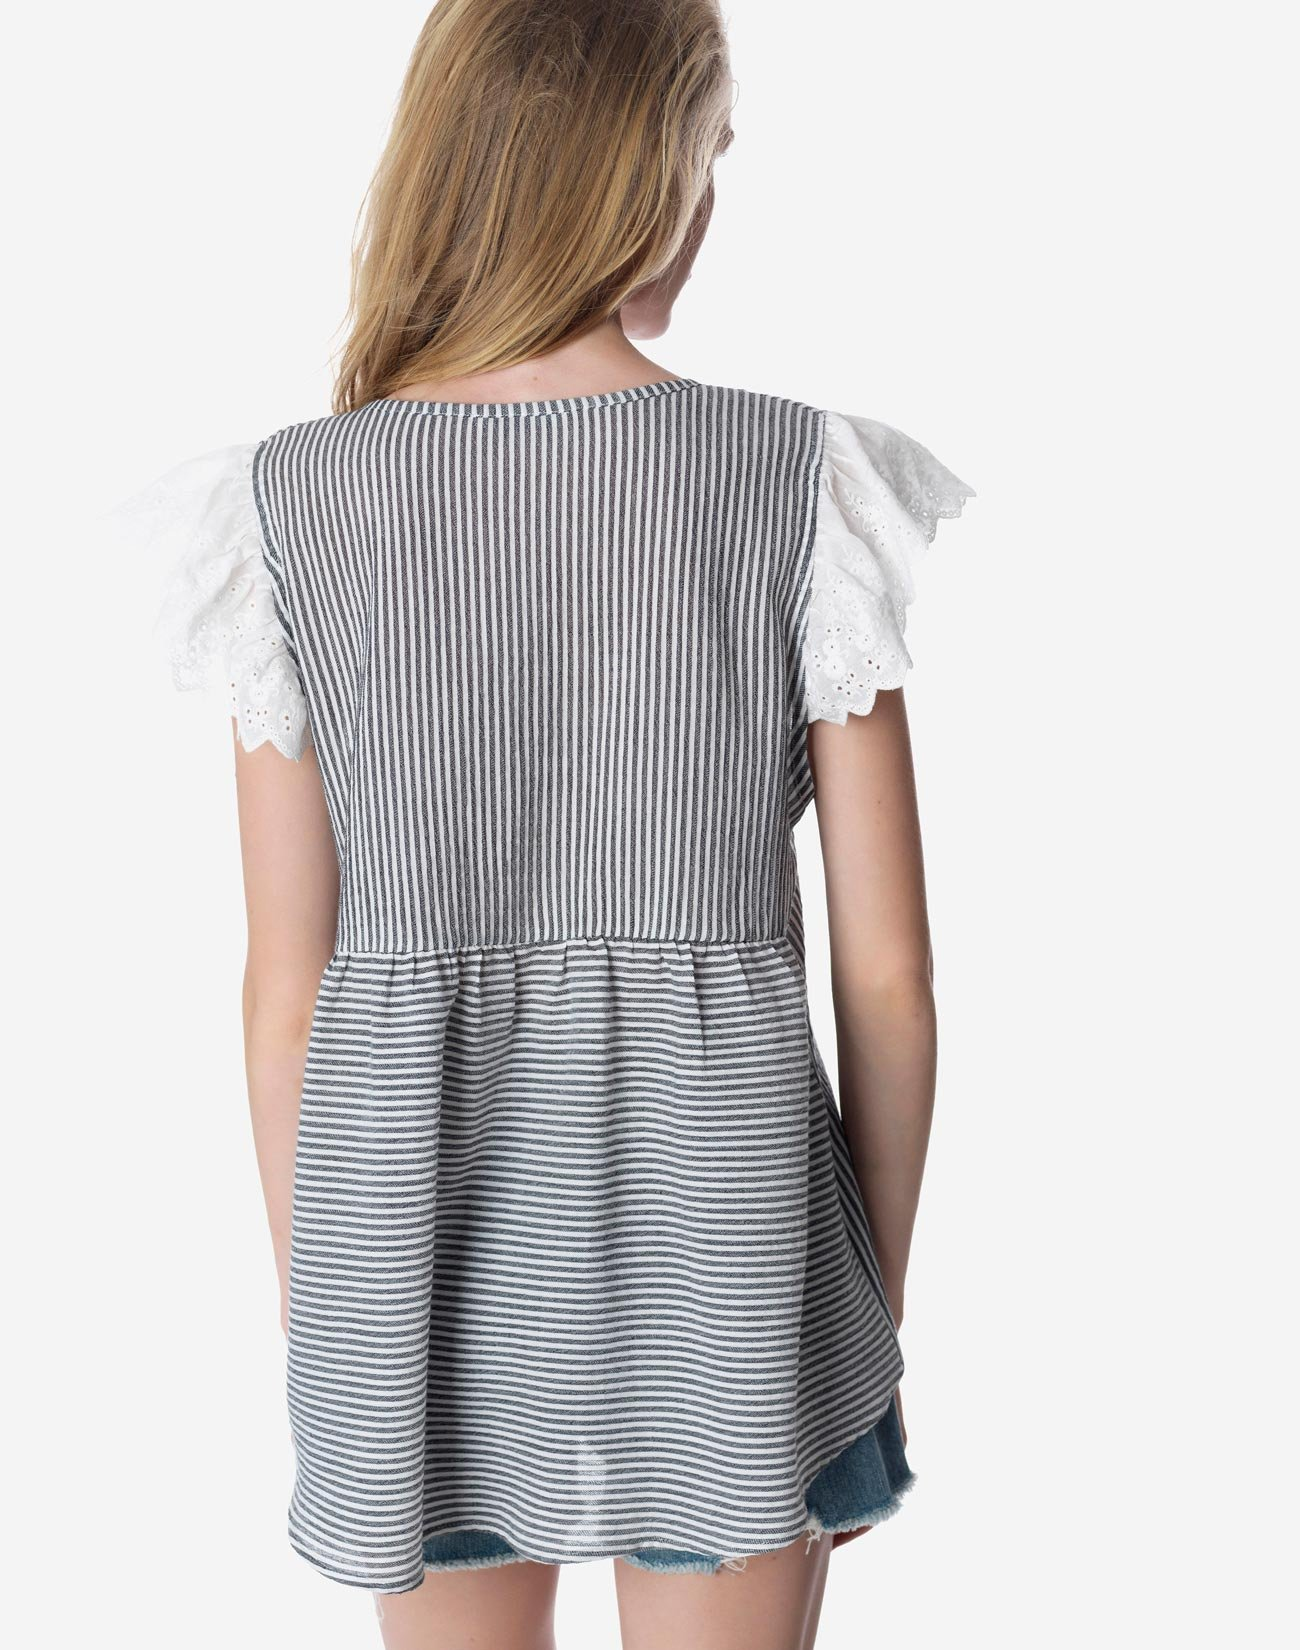 Striped top with broderie detail